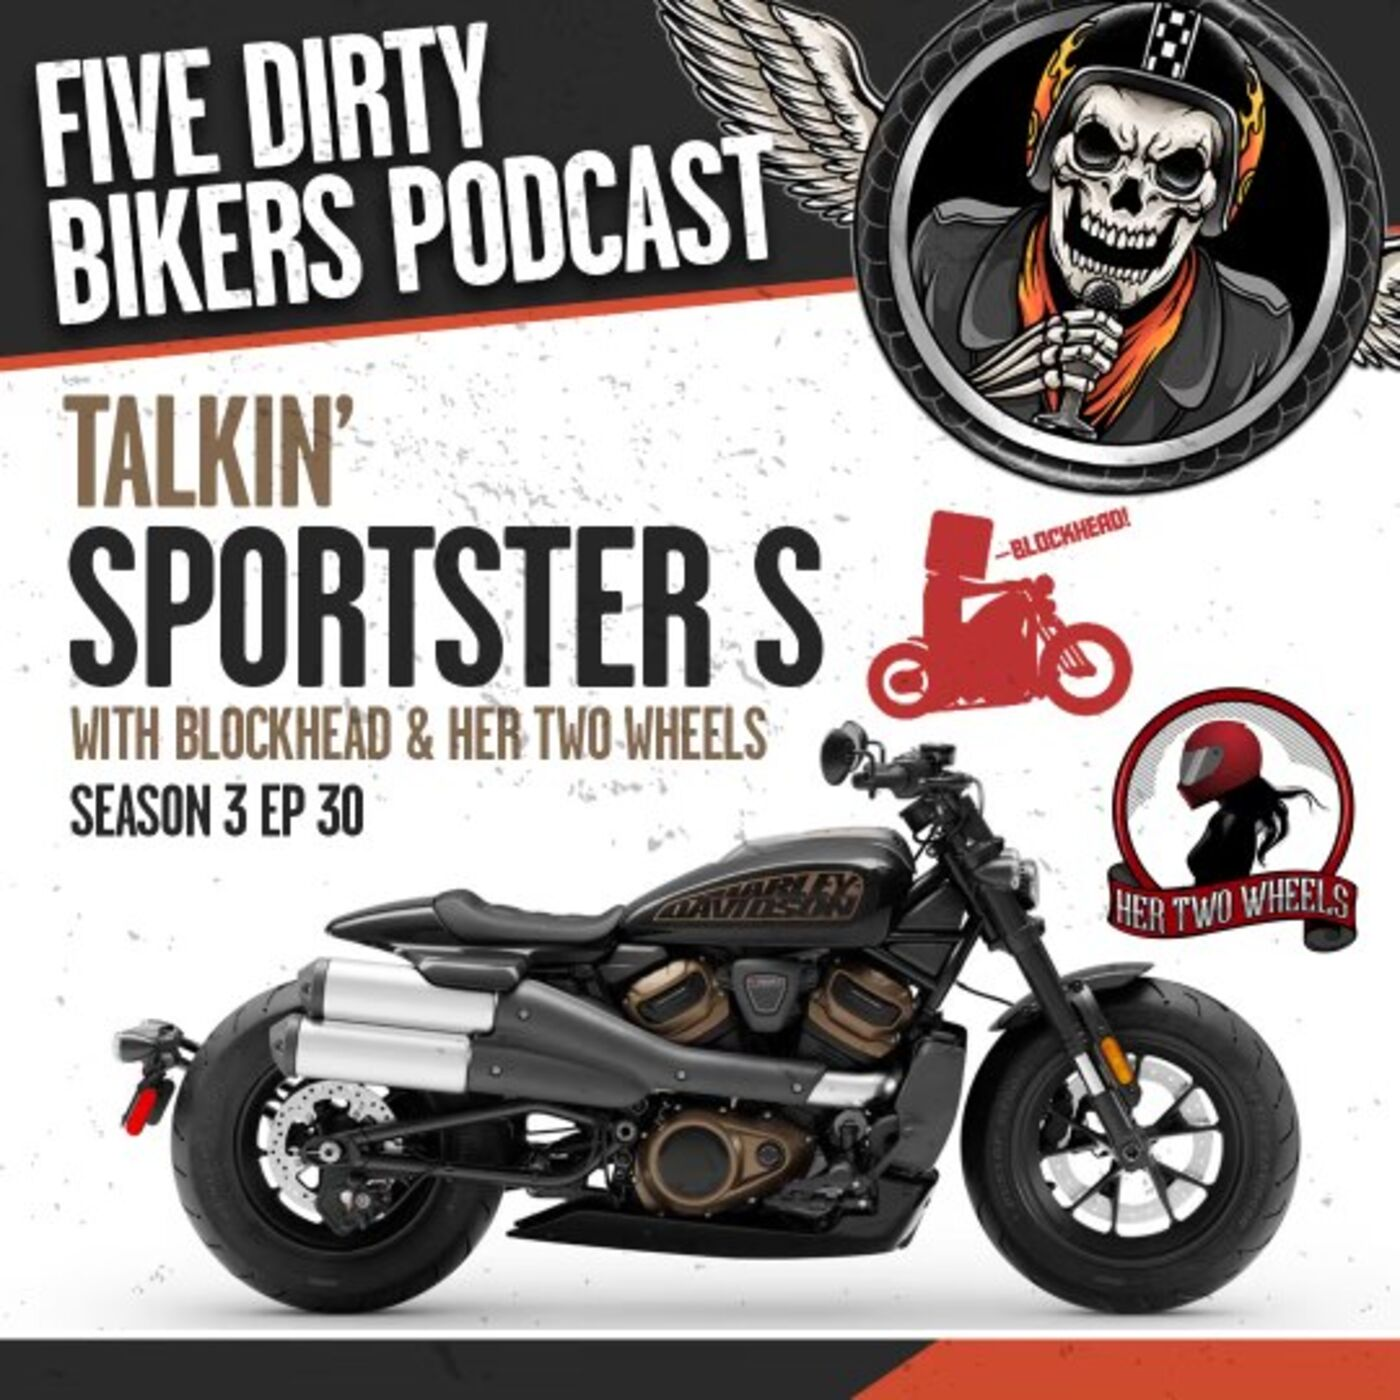 S3   EP 30 Talkin Sportster S with Blockhead and Her Two Wheels